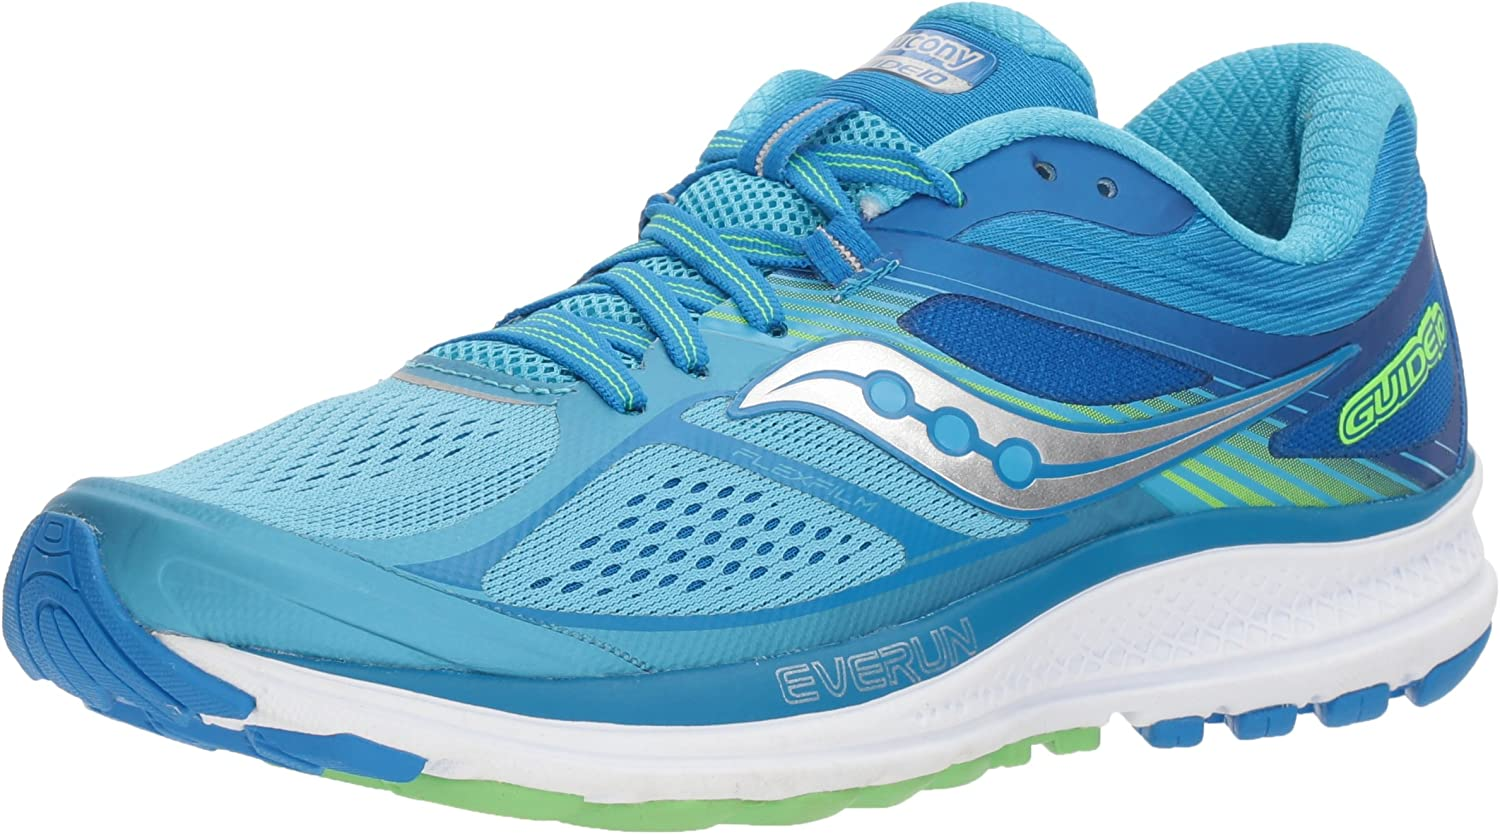 Saucony Women s Guide 10 Running Shoe